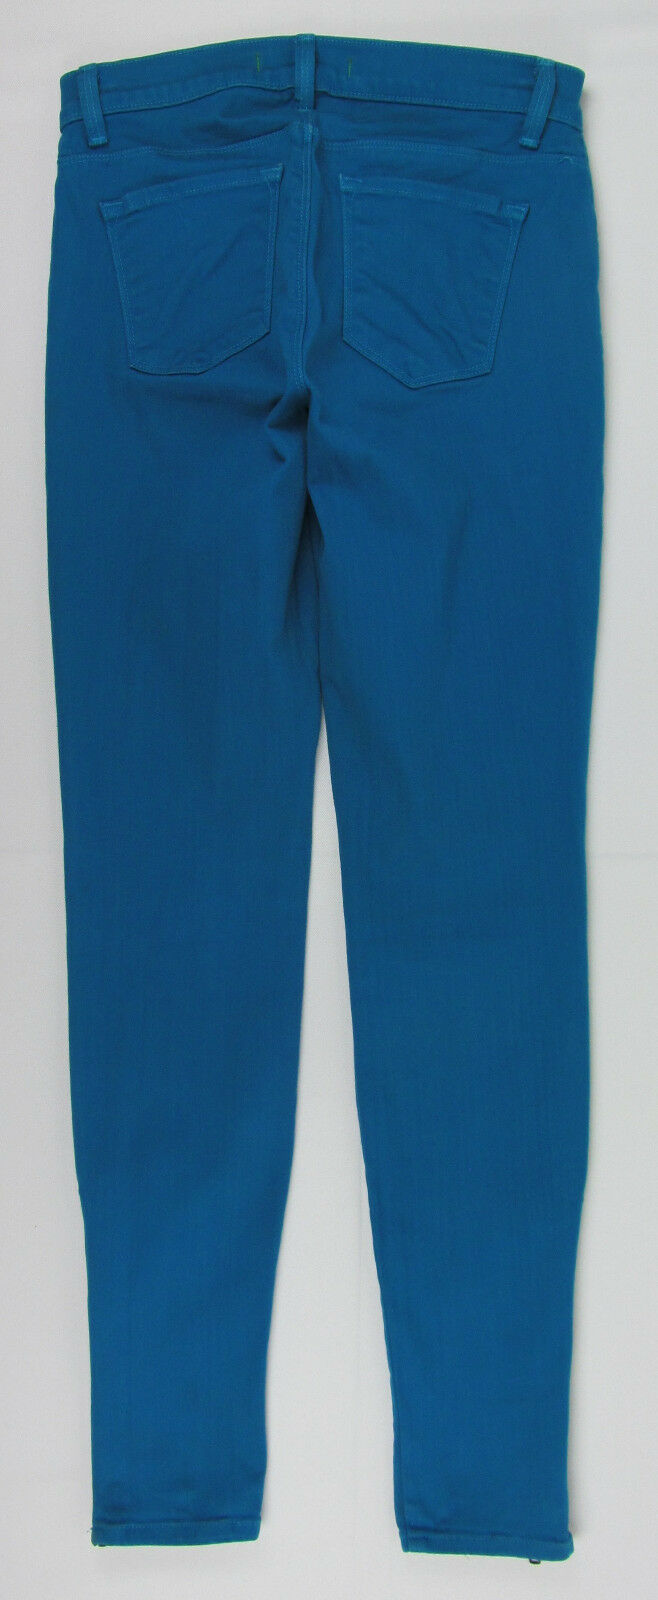 J Brand jeans Azure Ankle Skinny Zipper cuffs USA Made Teal Womens Size 25 image 4